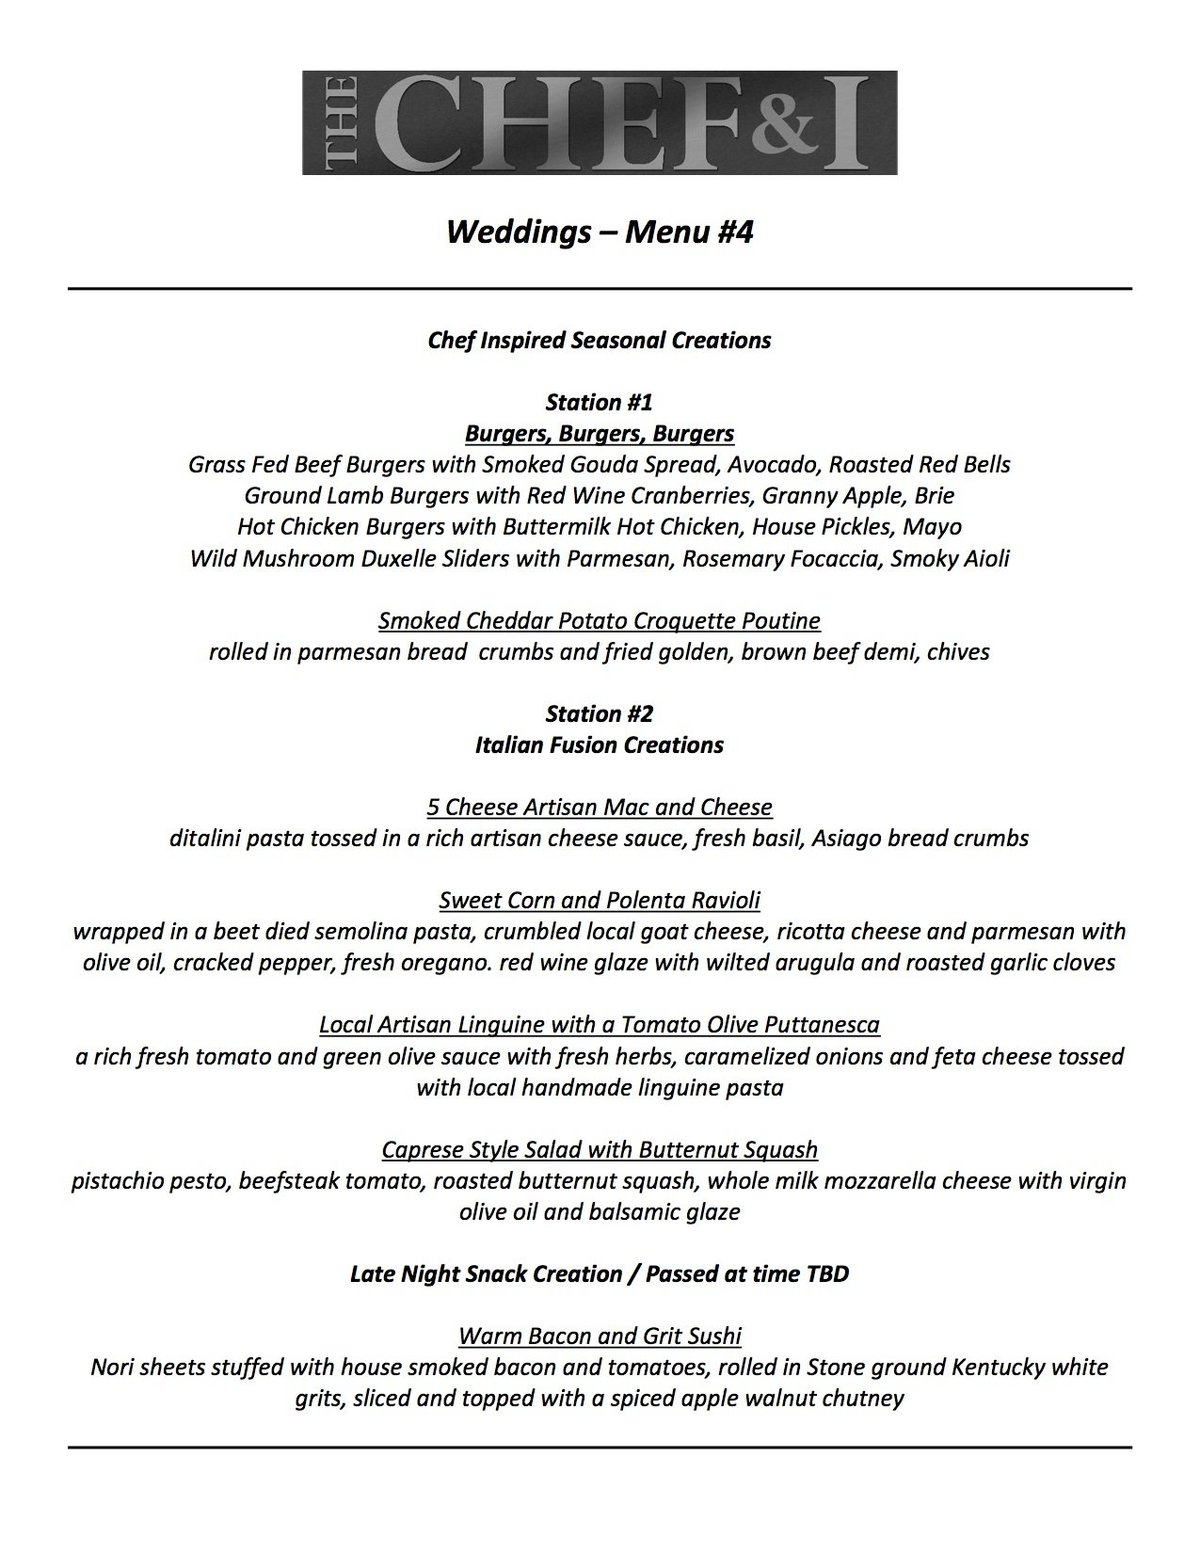 Weddings Menu 4